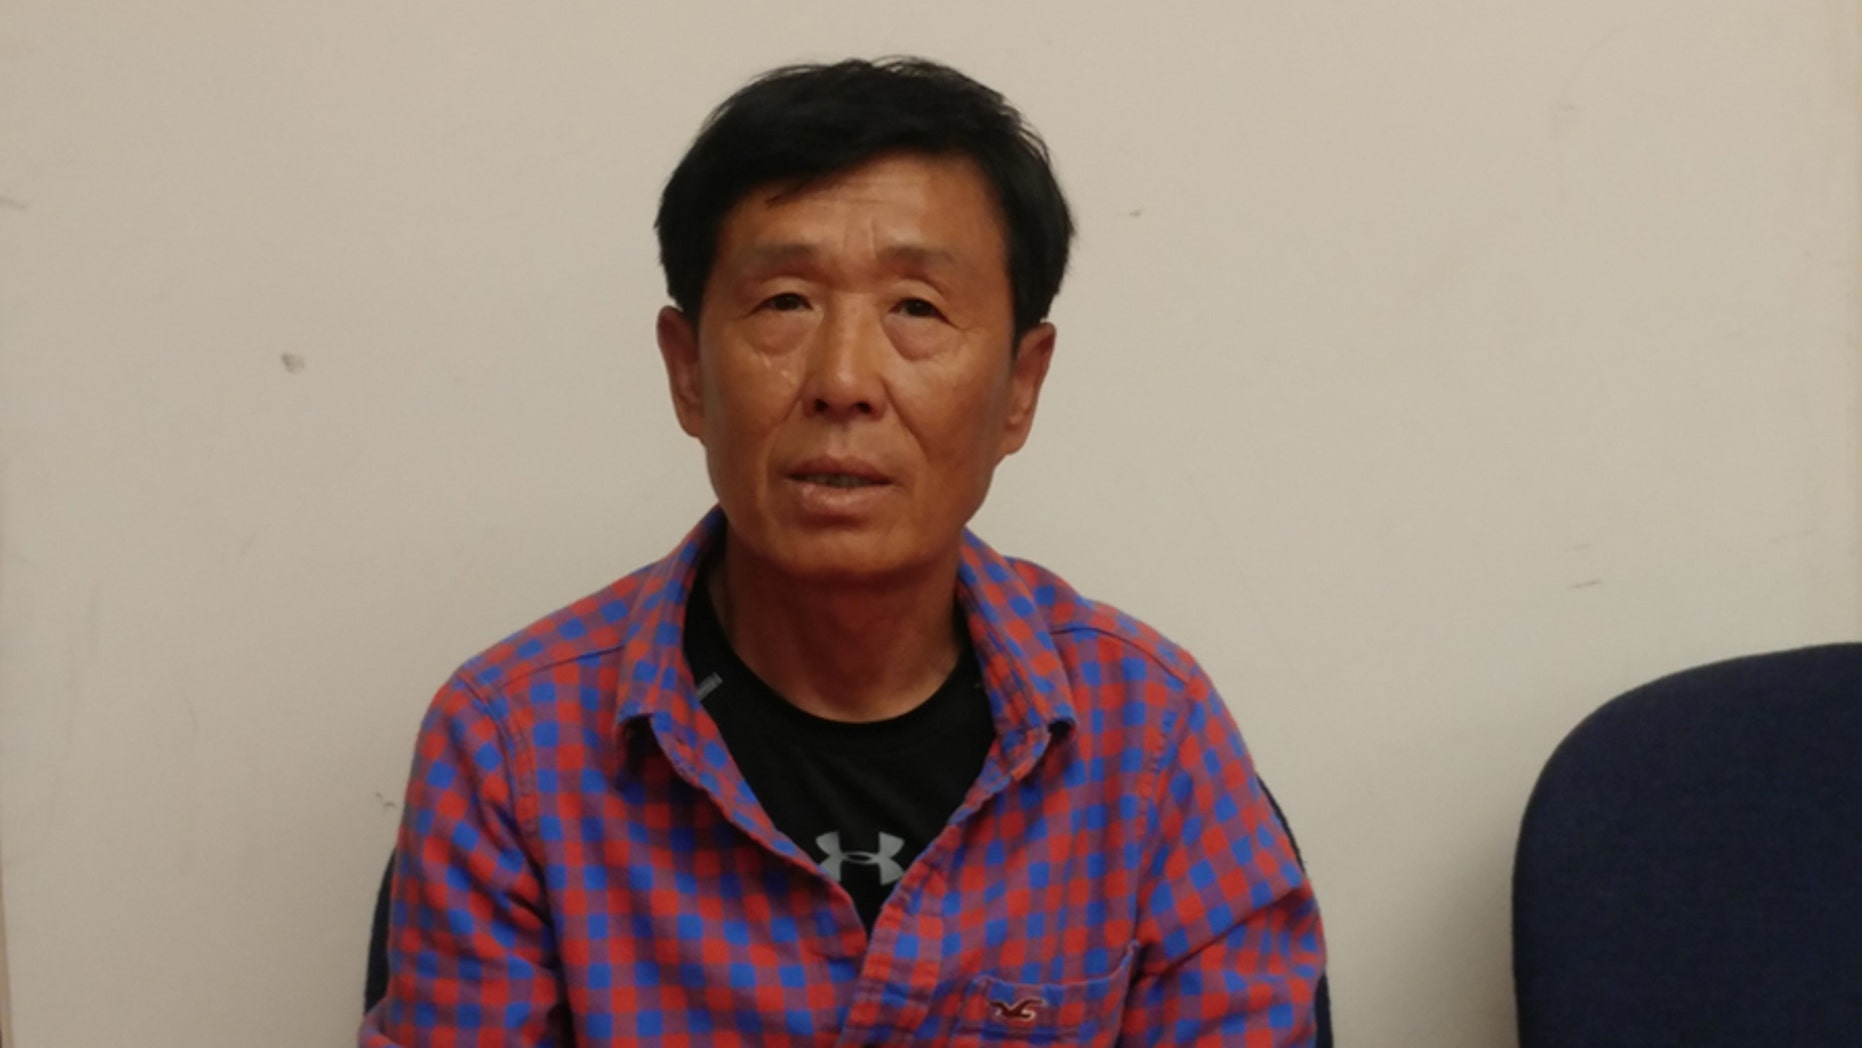 Choi Kwanghyuk was able to free himself from the clutches of a brutal dictatorship in his native North Korea. Like many others in the Hermit Kingdom, he was targeted and persecuted by the government for his Christian faith.